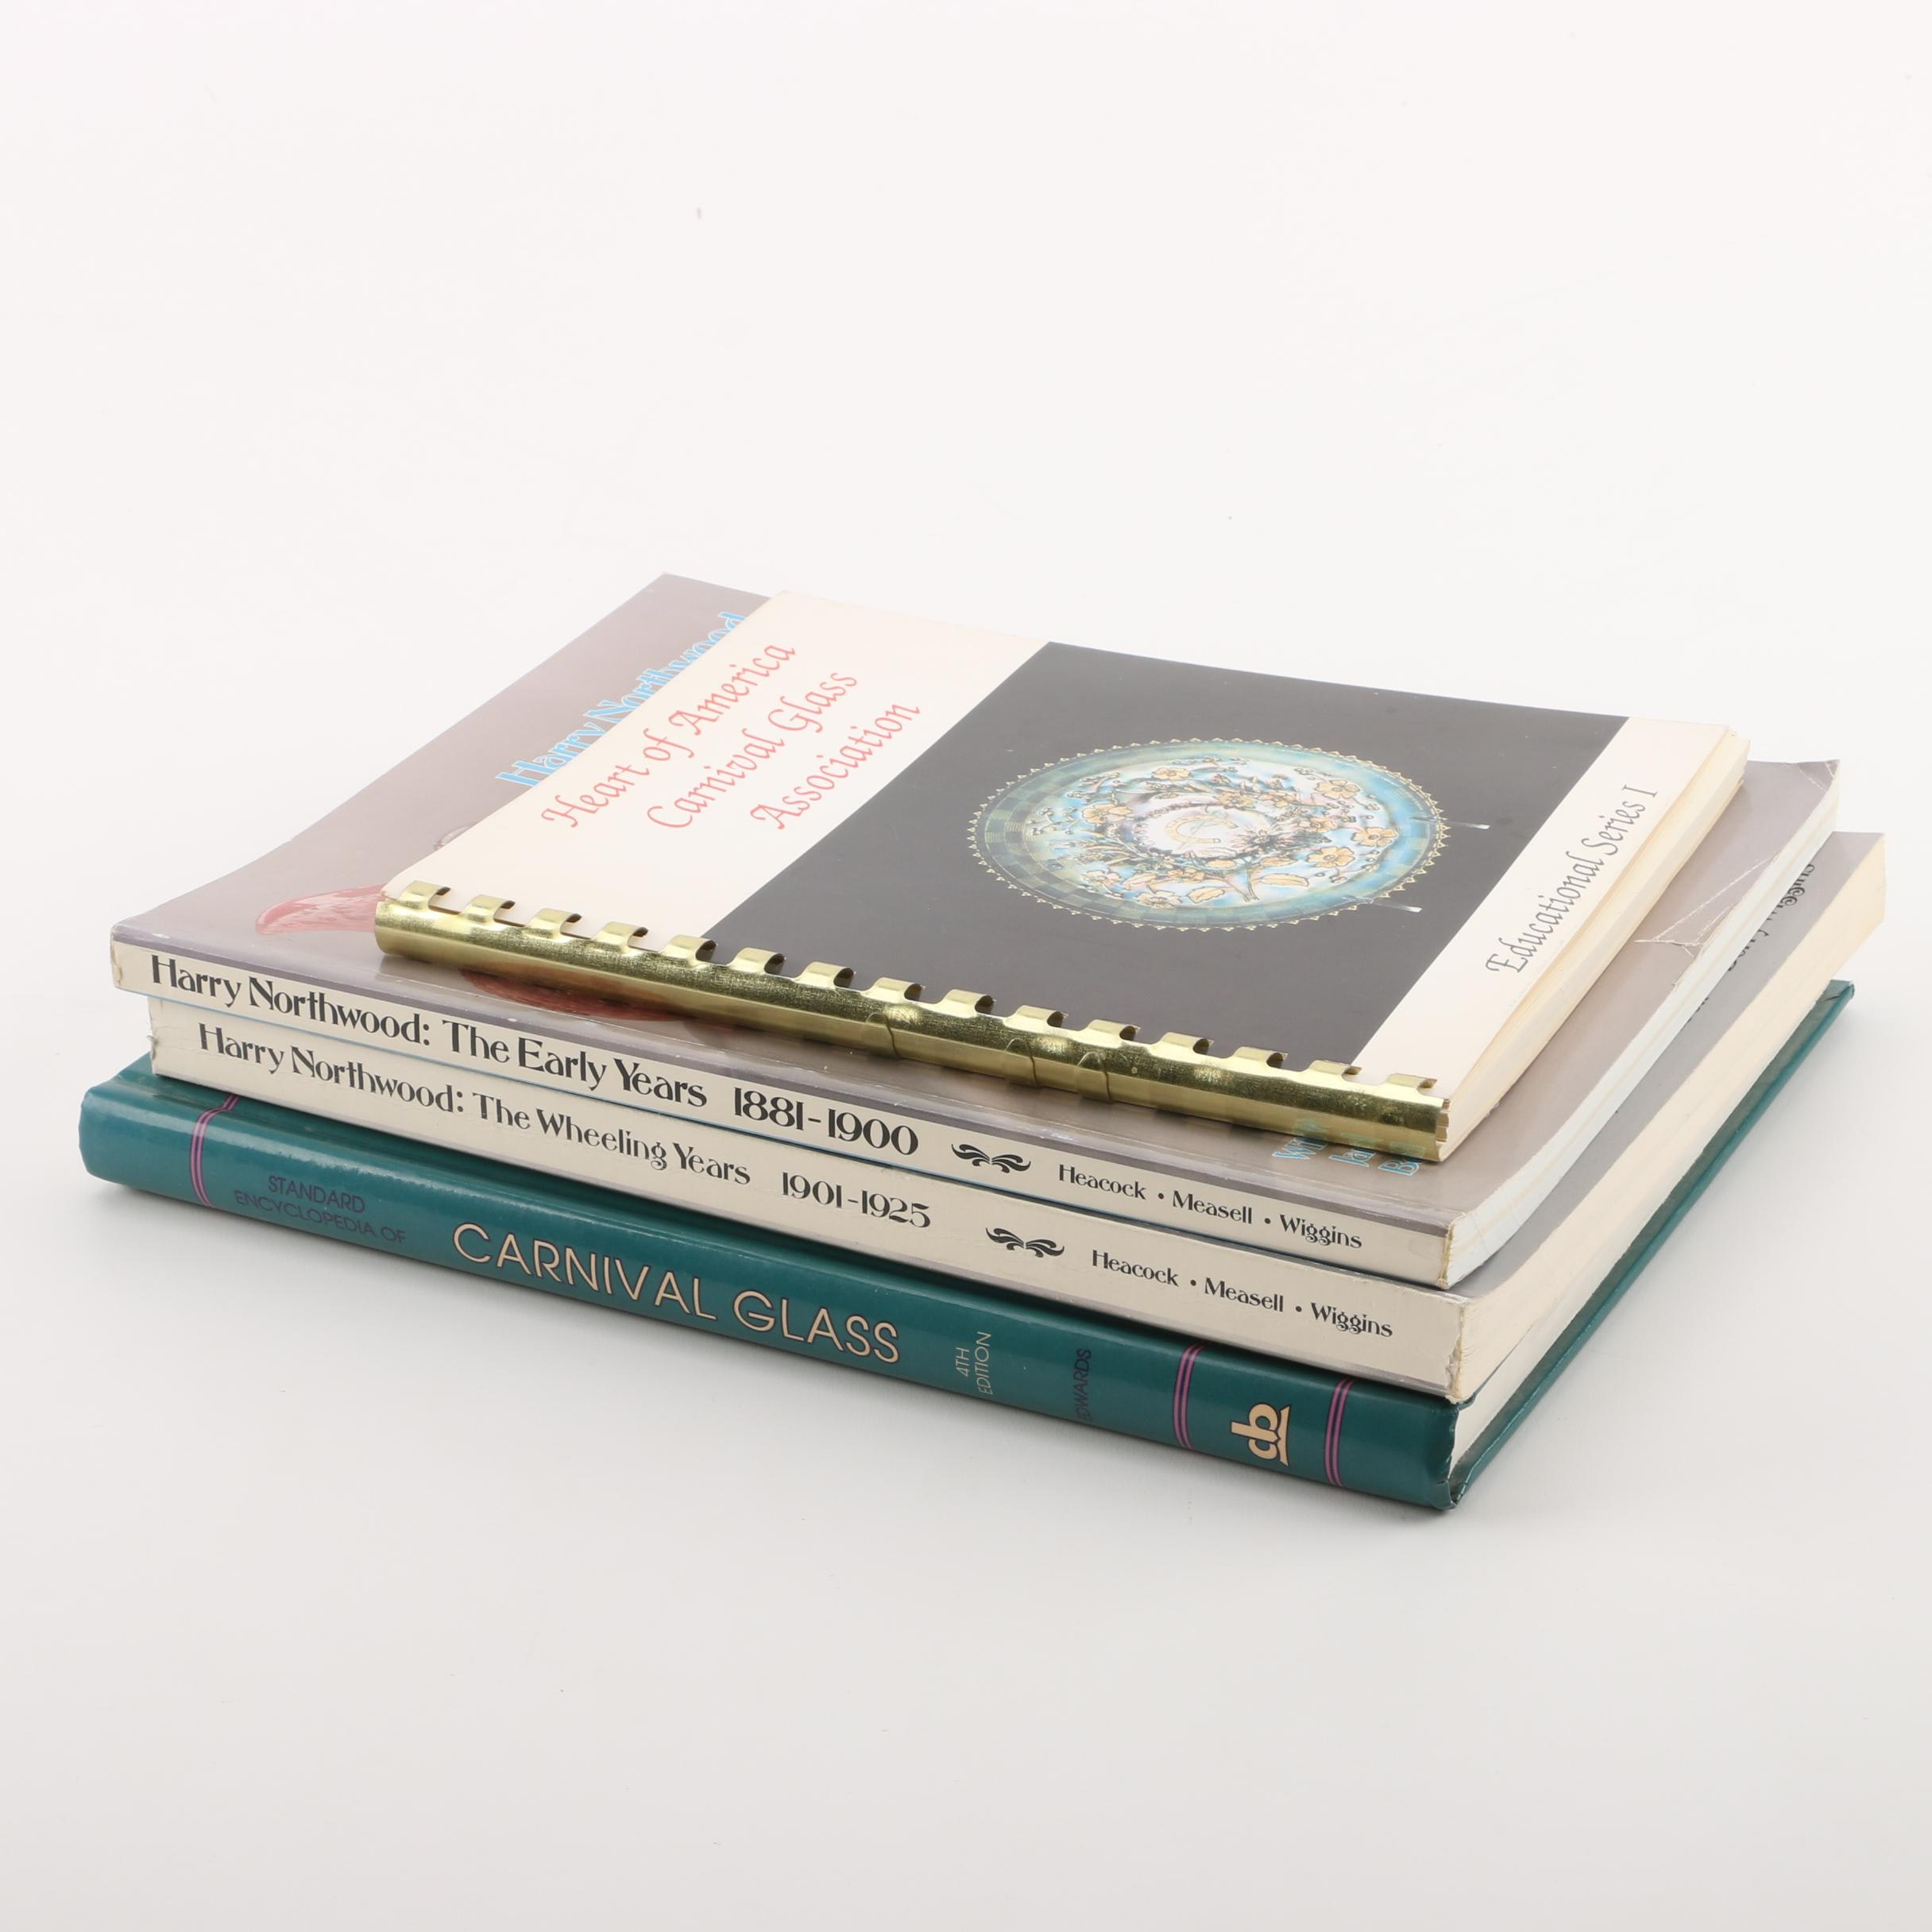 Books on Carnival Glass